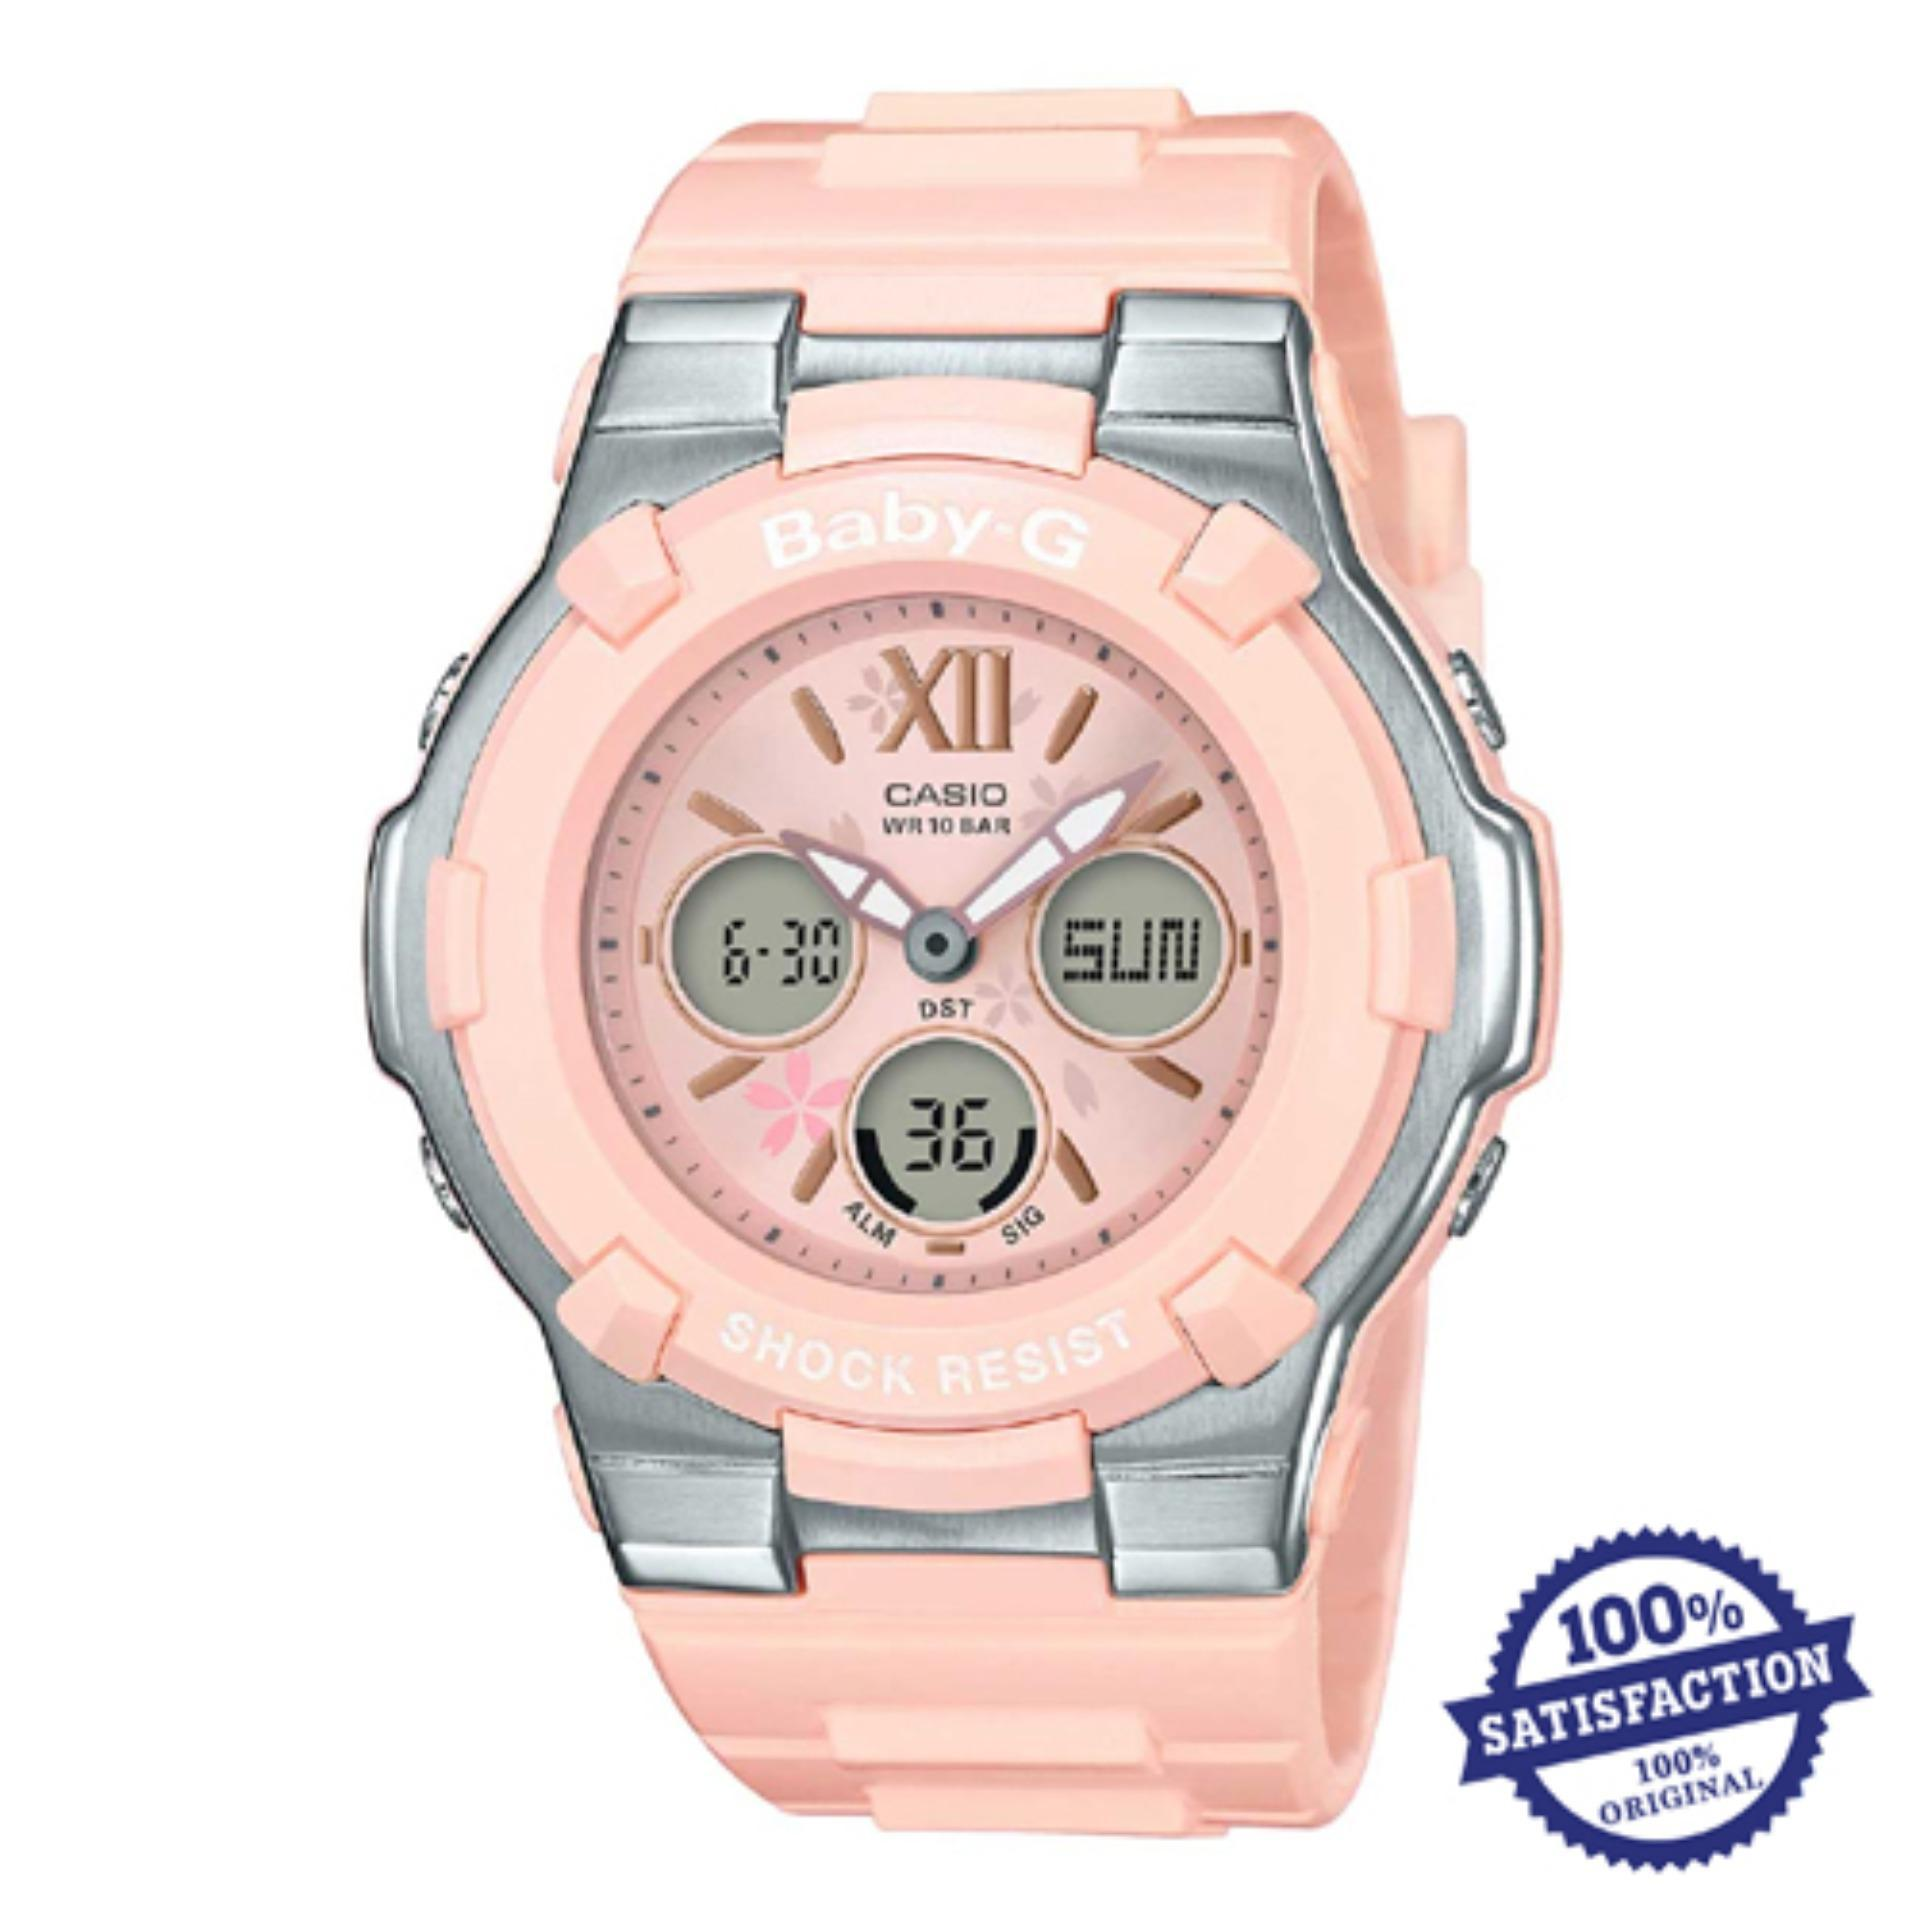 Casio Baby G Philippines Watches For Sale Prices Bga 180 2b 110bl 4b Resin Band Womens